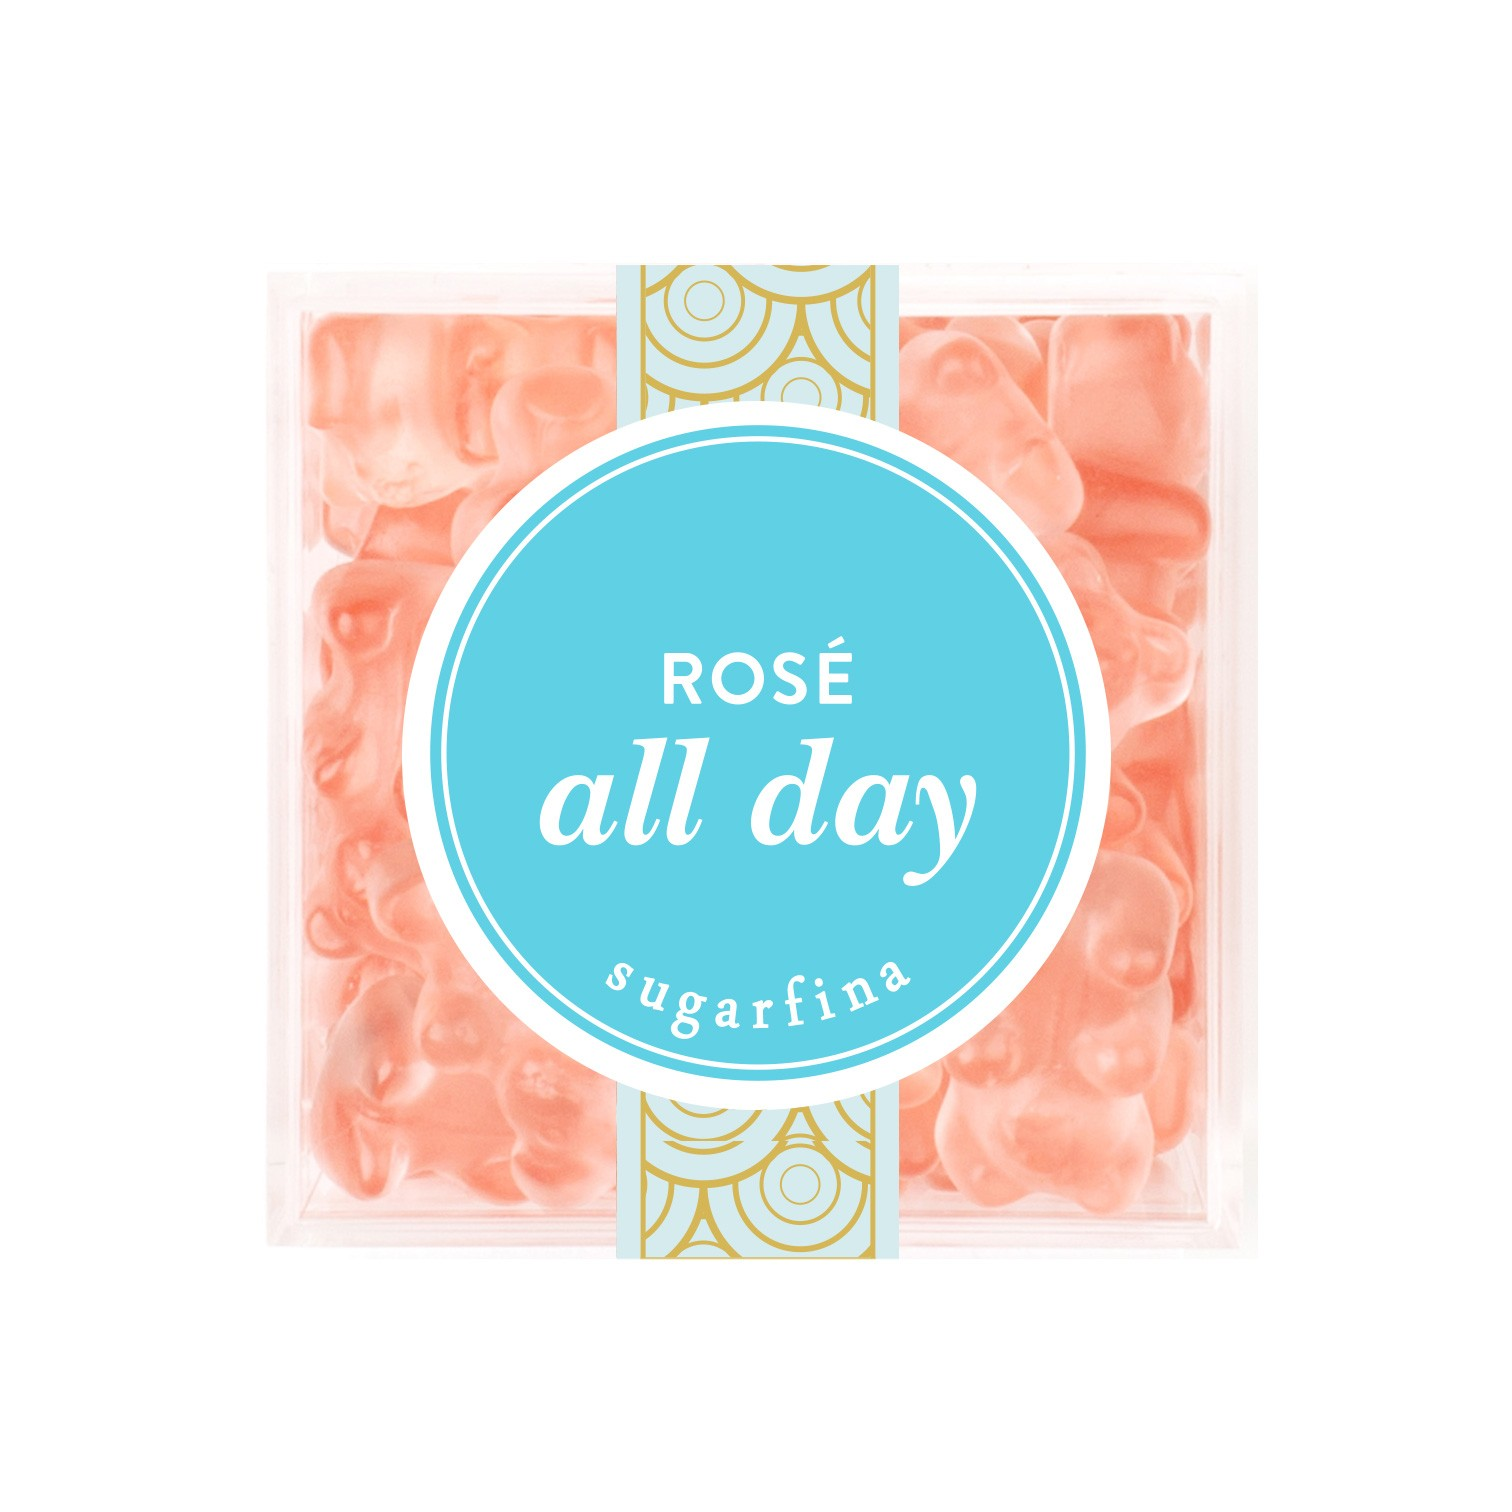 Sugarfina Rosé All Day Bears